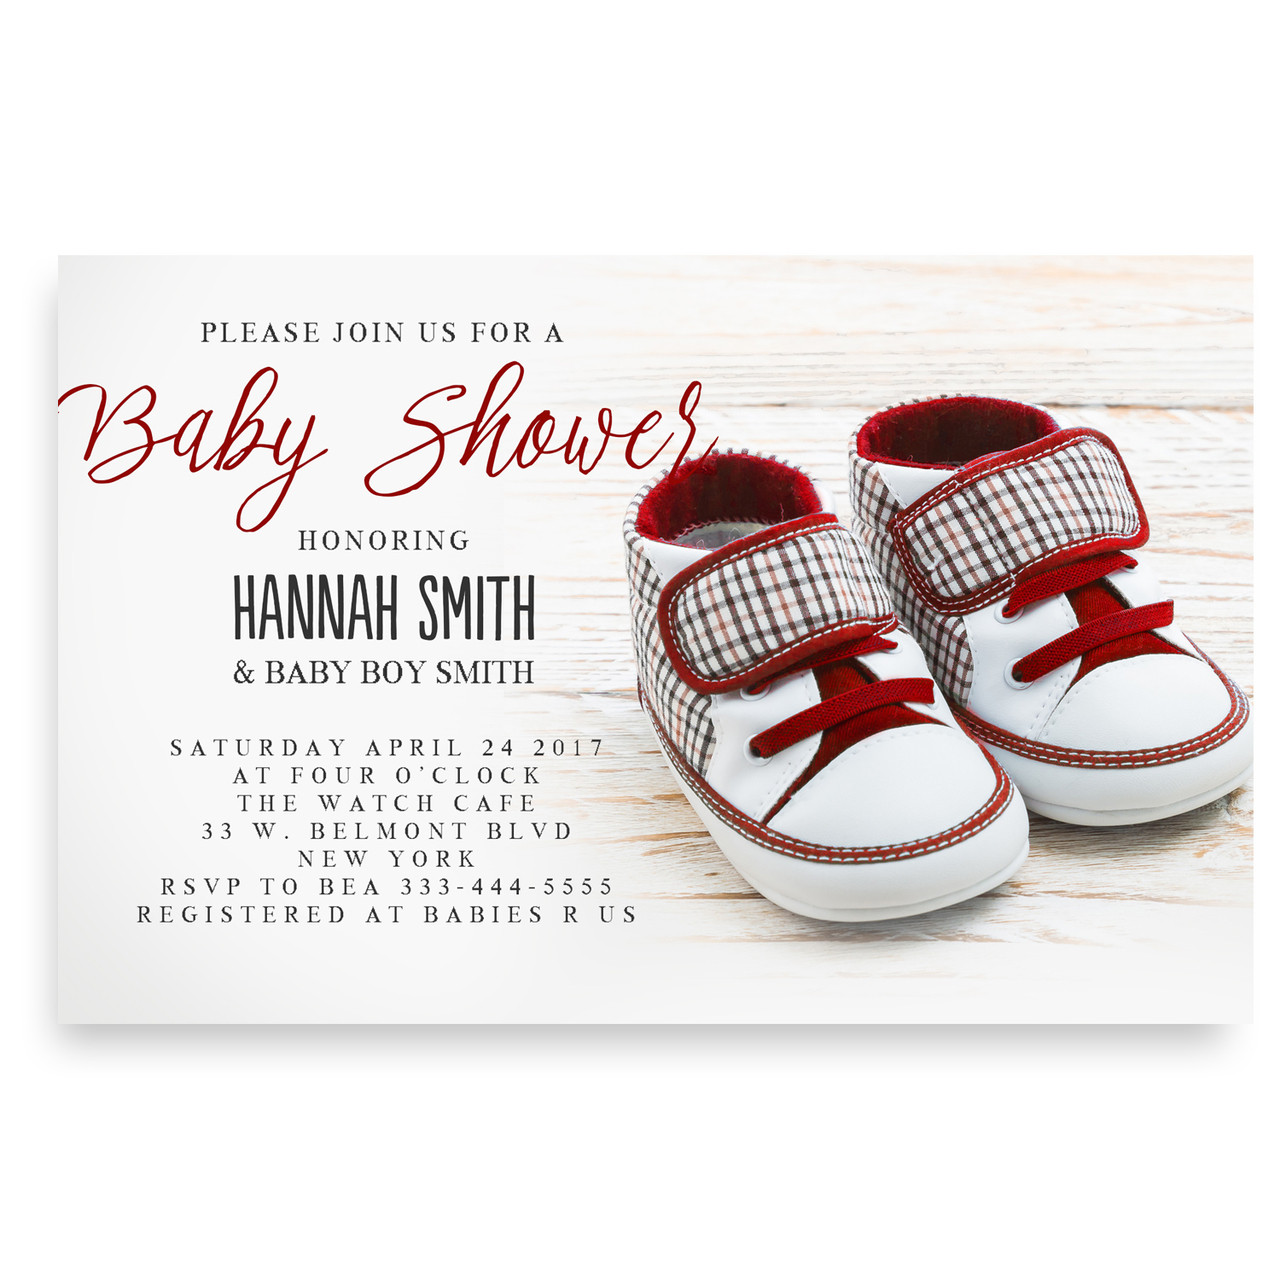 Cute baby sneakers, baby shower invitation